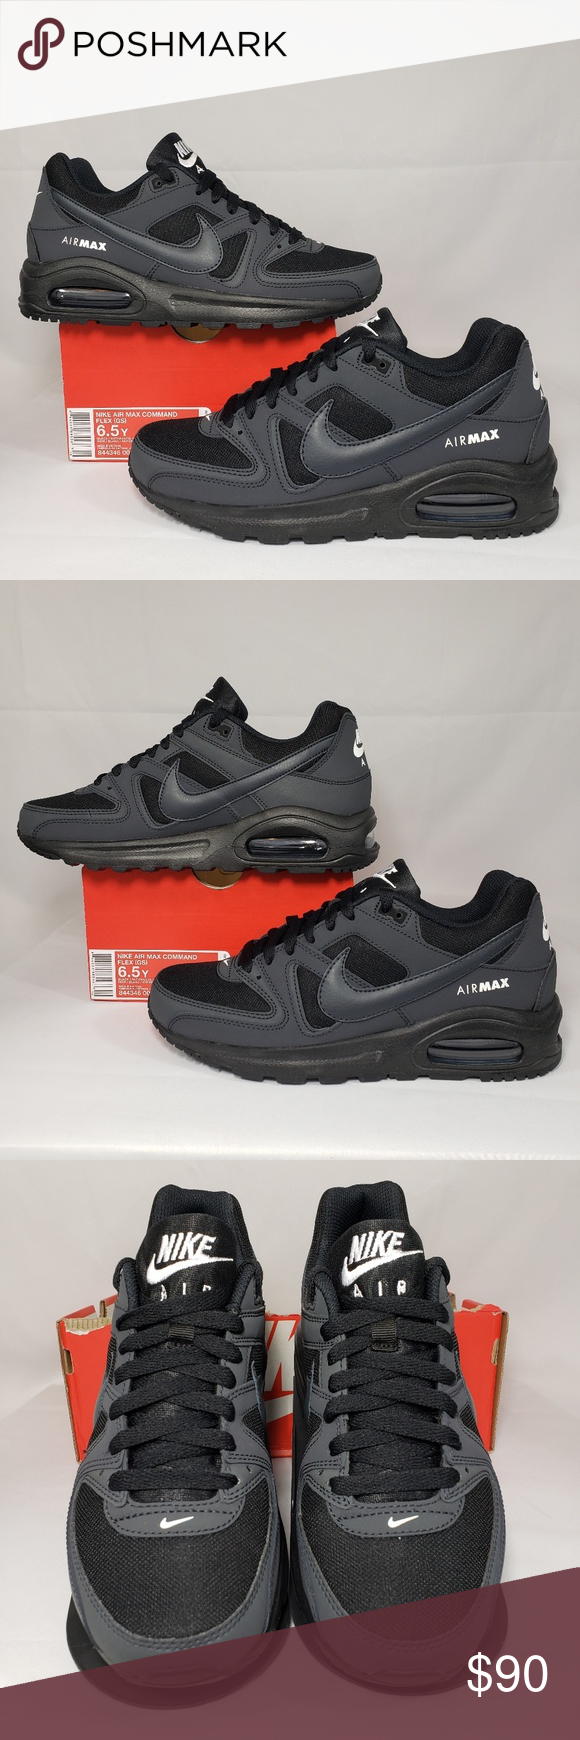 Nike Air Max Command Flex BLACKANTHRACITE WHITE SIZES: 4.5Y